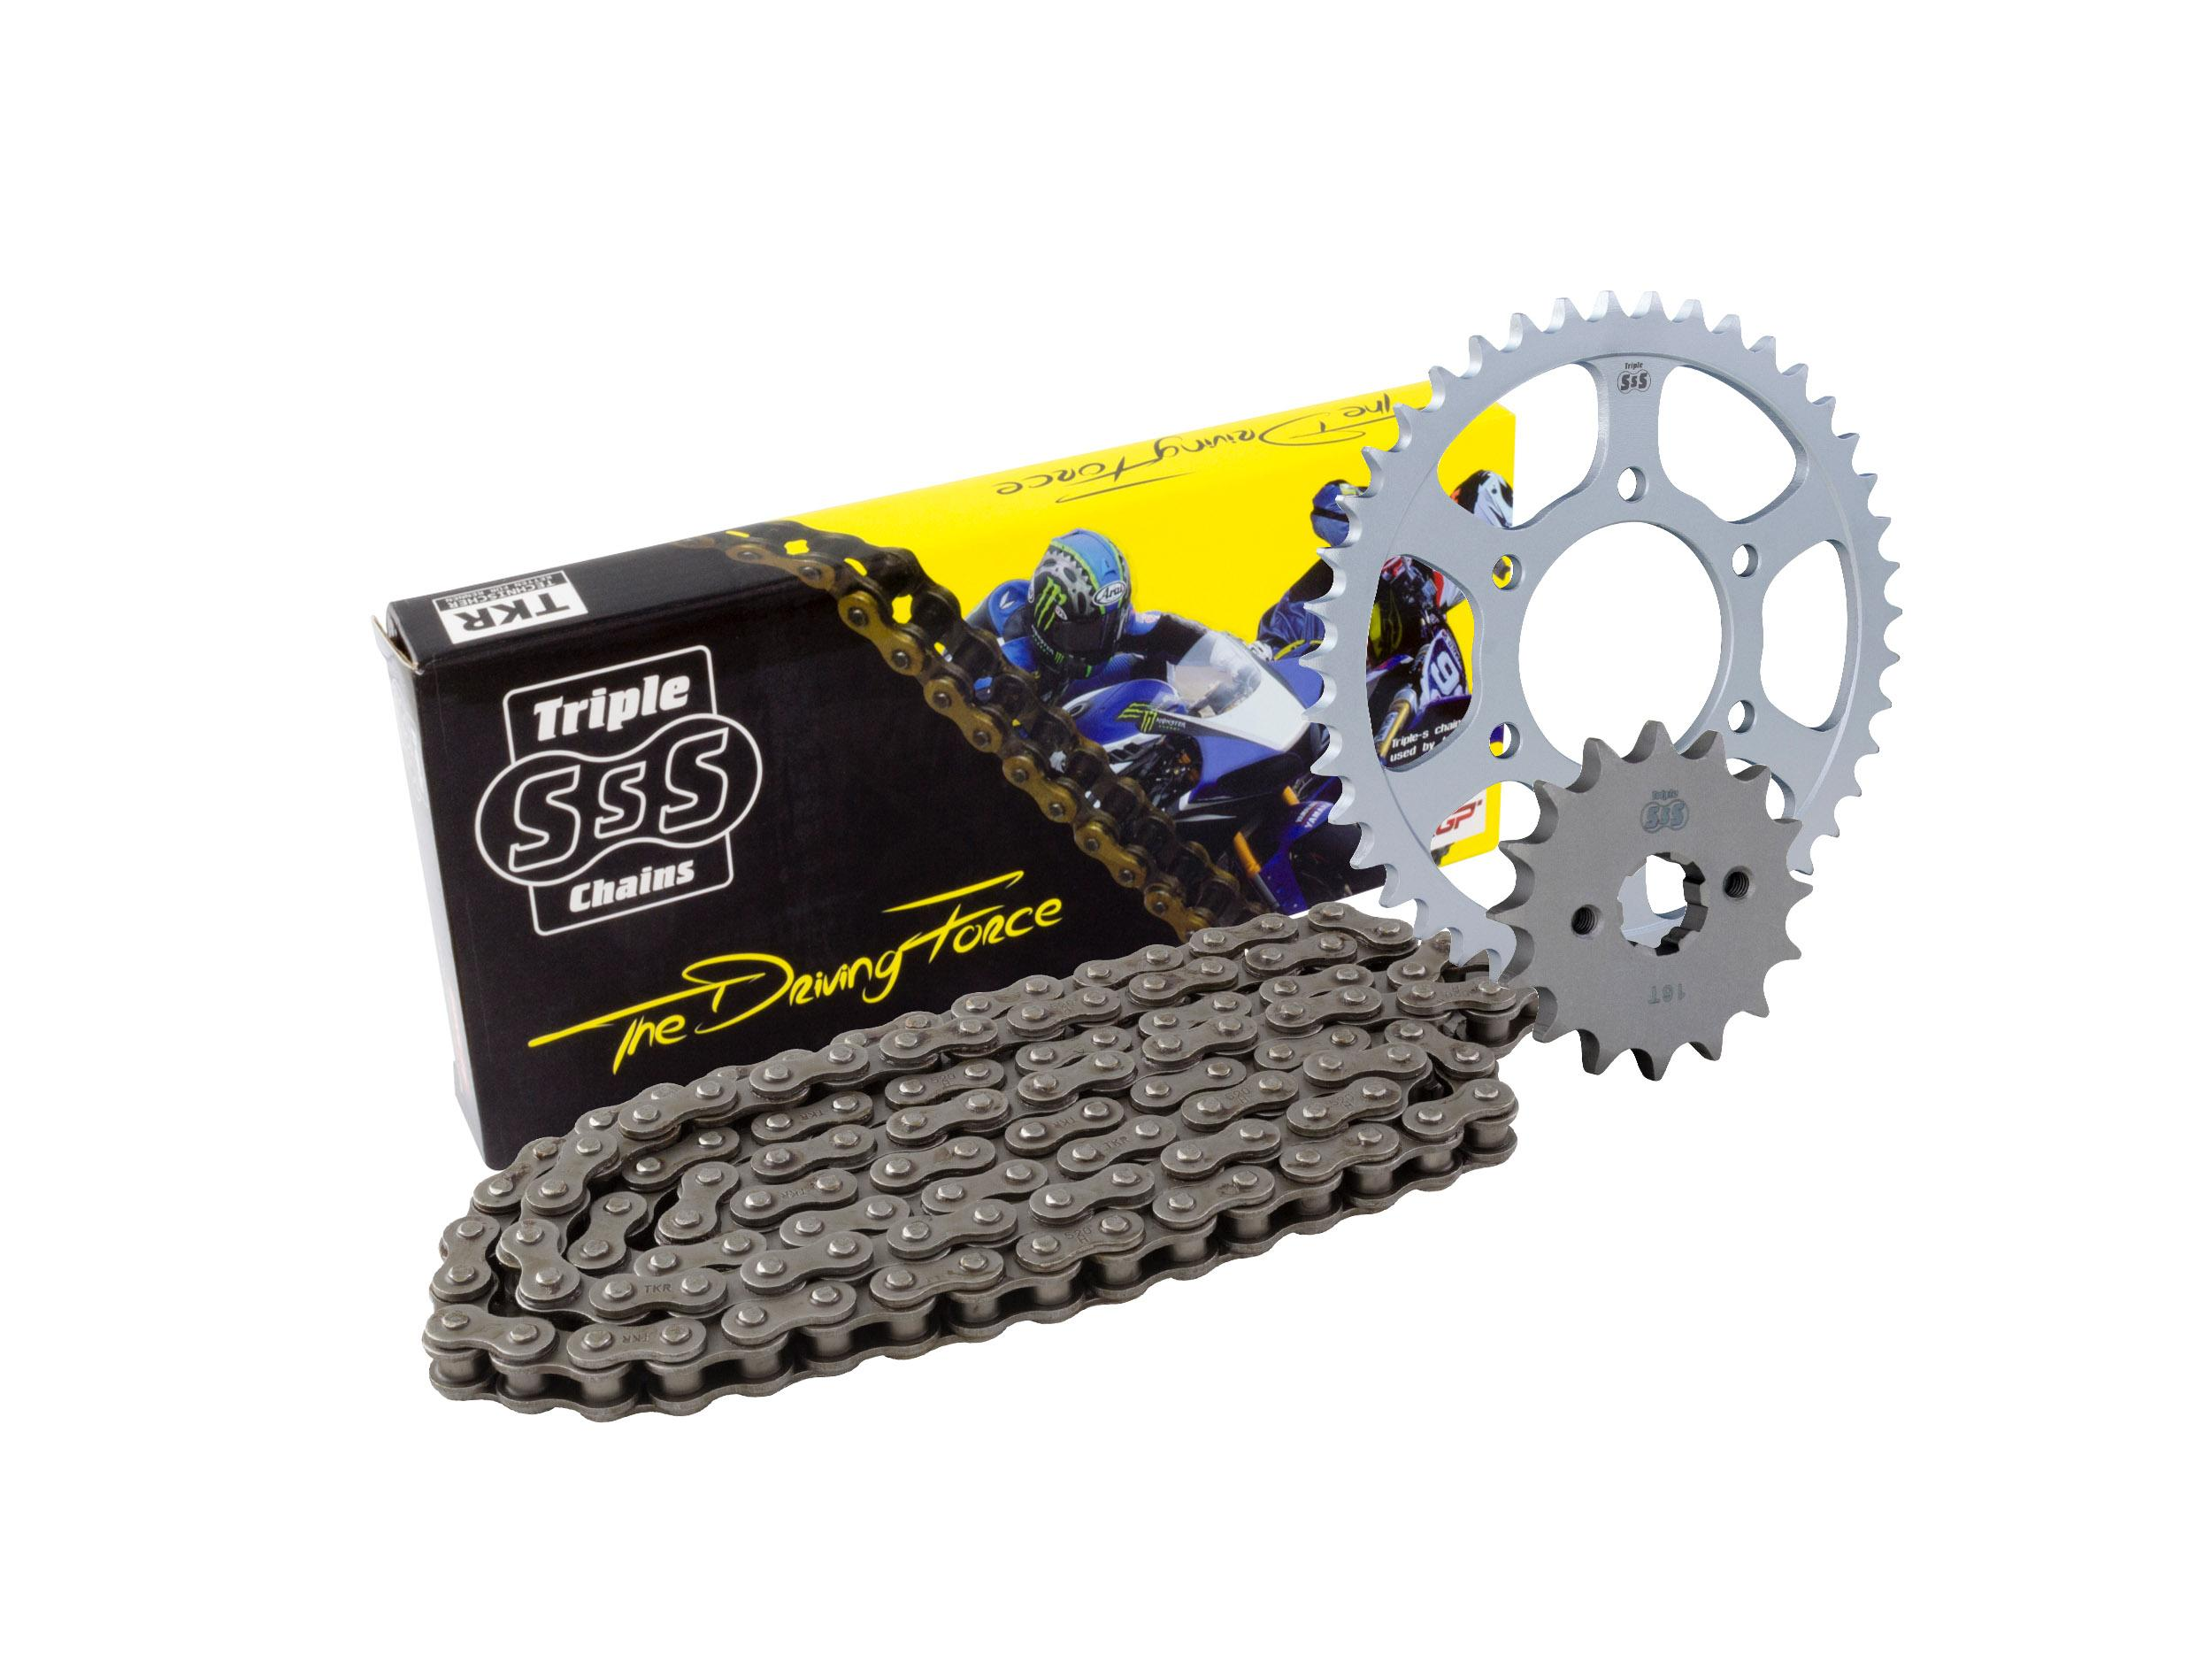 Kawasaki KLX125 CAF-CFF 10-15 Chain & Sprocket Kit: 14T Front, 47T Rear, HD Chain 428H 124Link